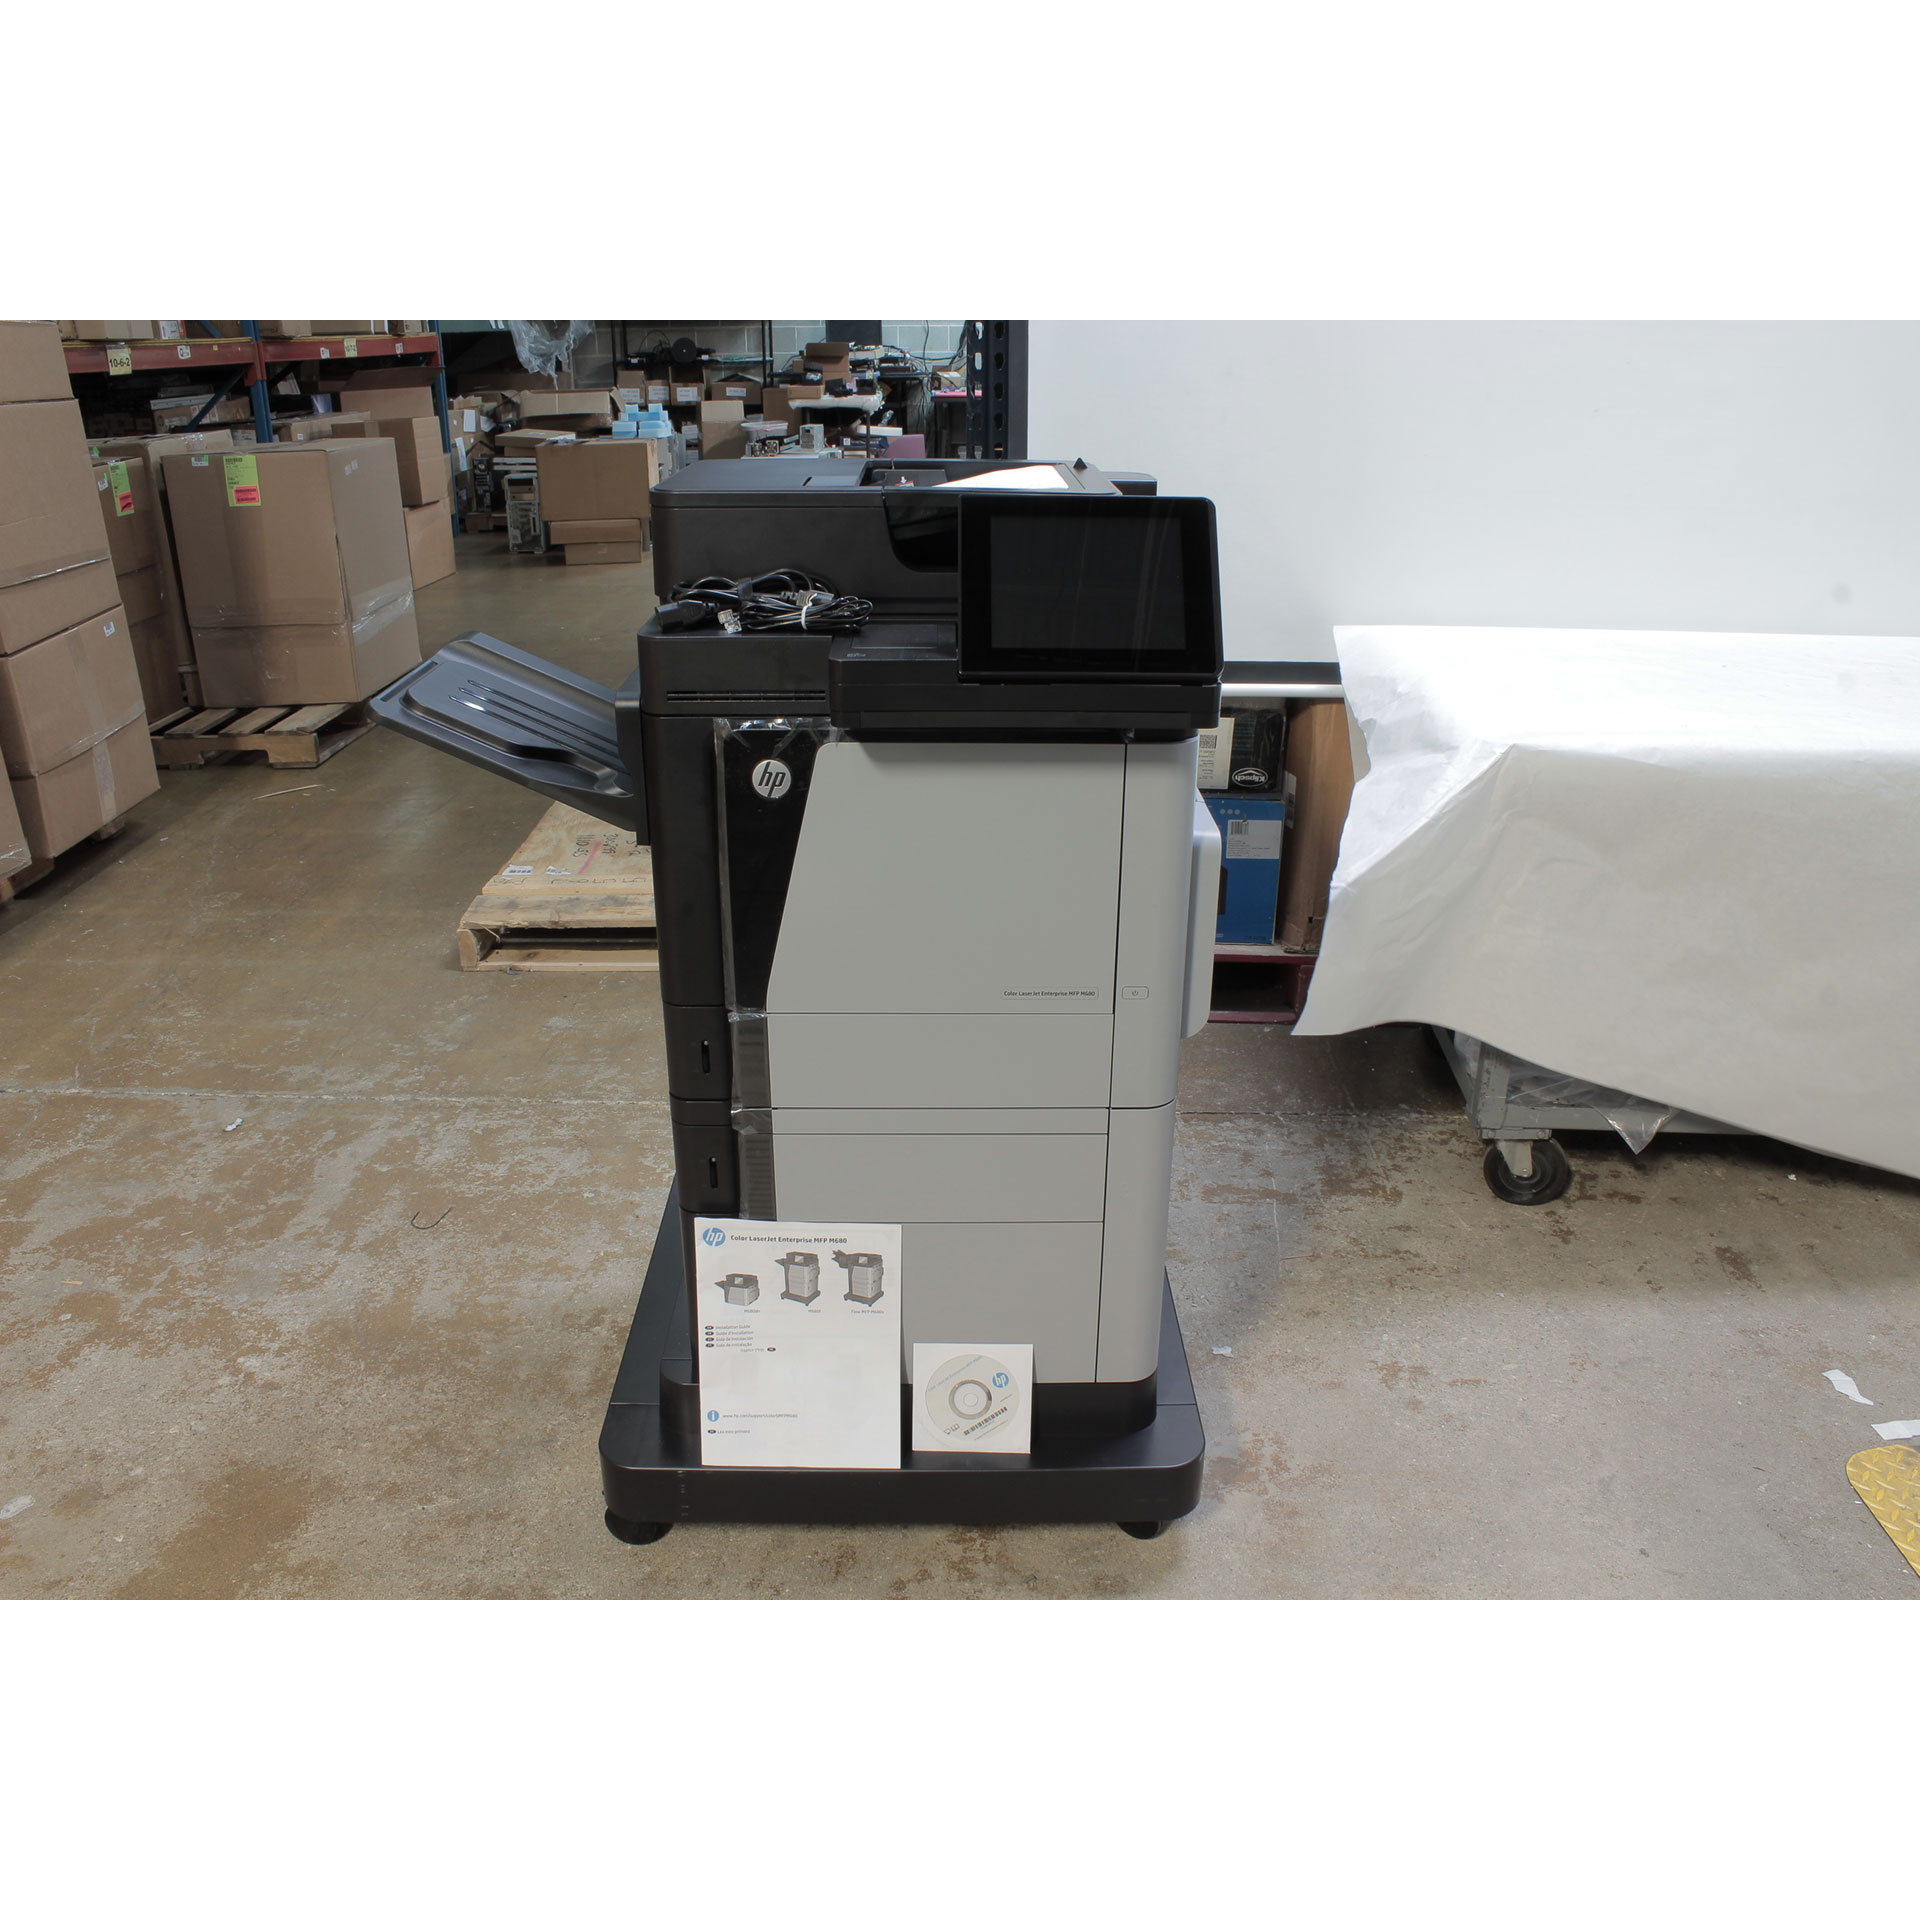 HP Color LaserJet Enterprise MFP M680f A4 Printer CZ249A